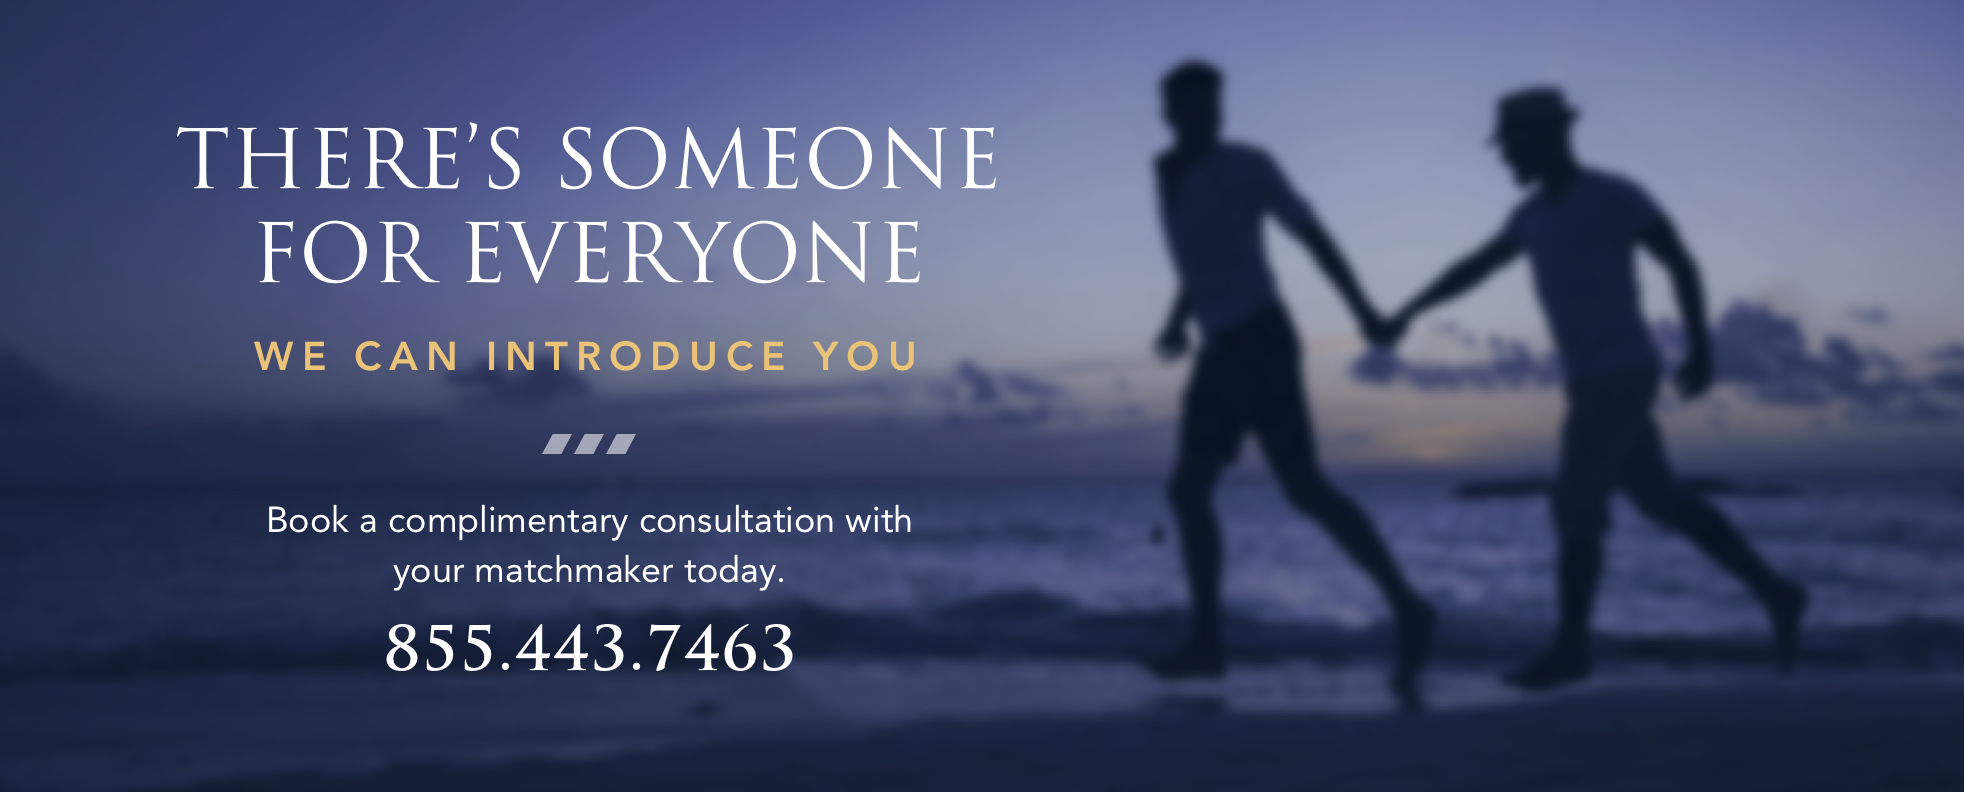 Book a complimentary consultation with your matchmaker today